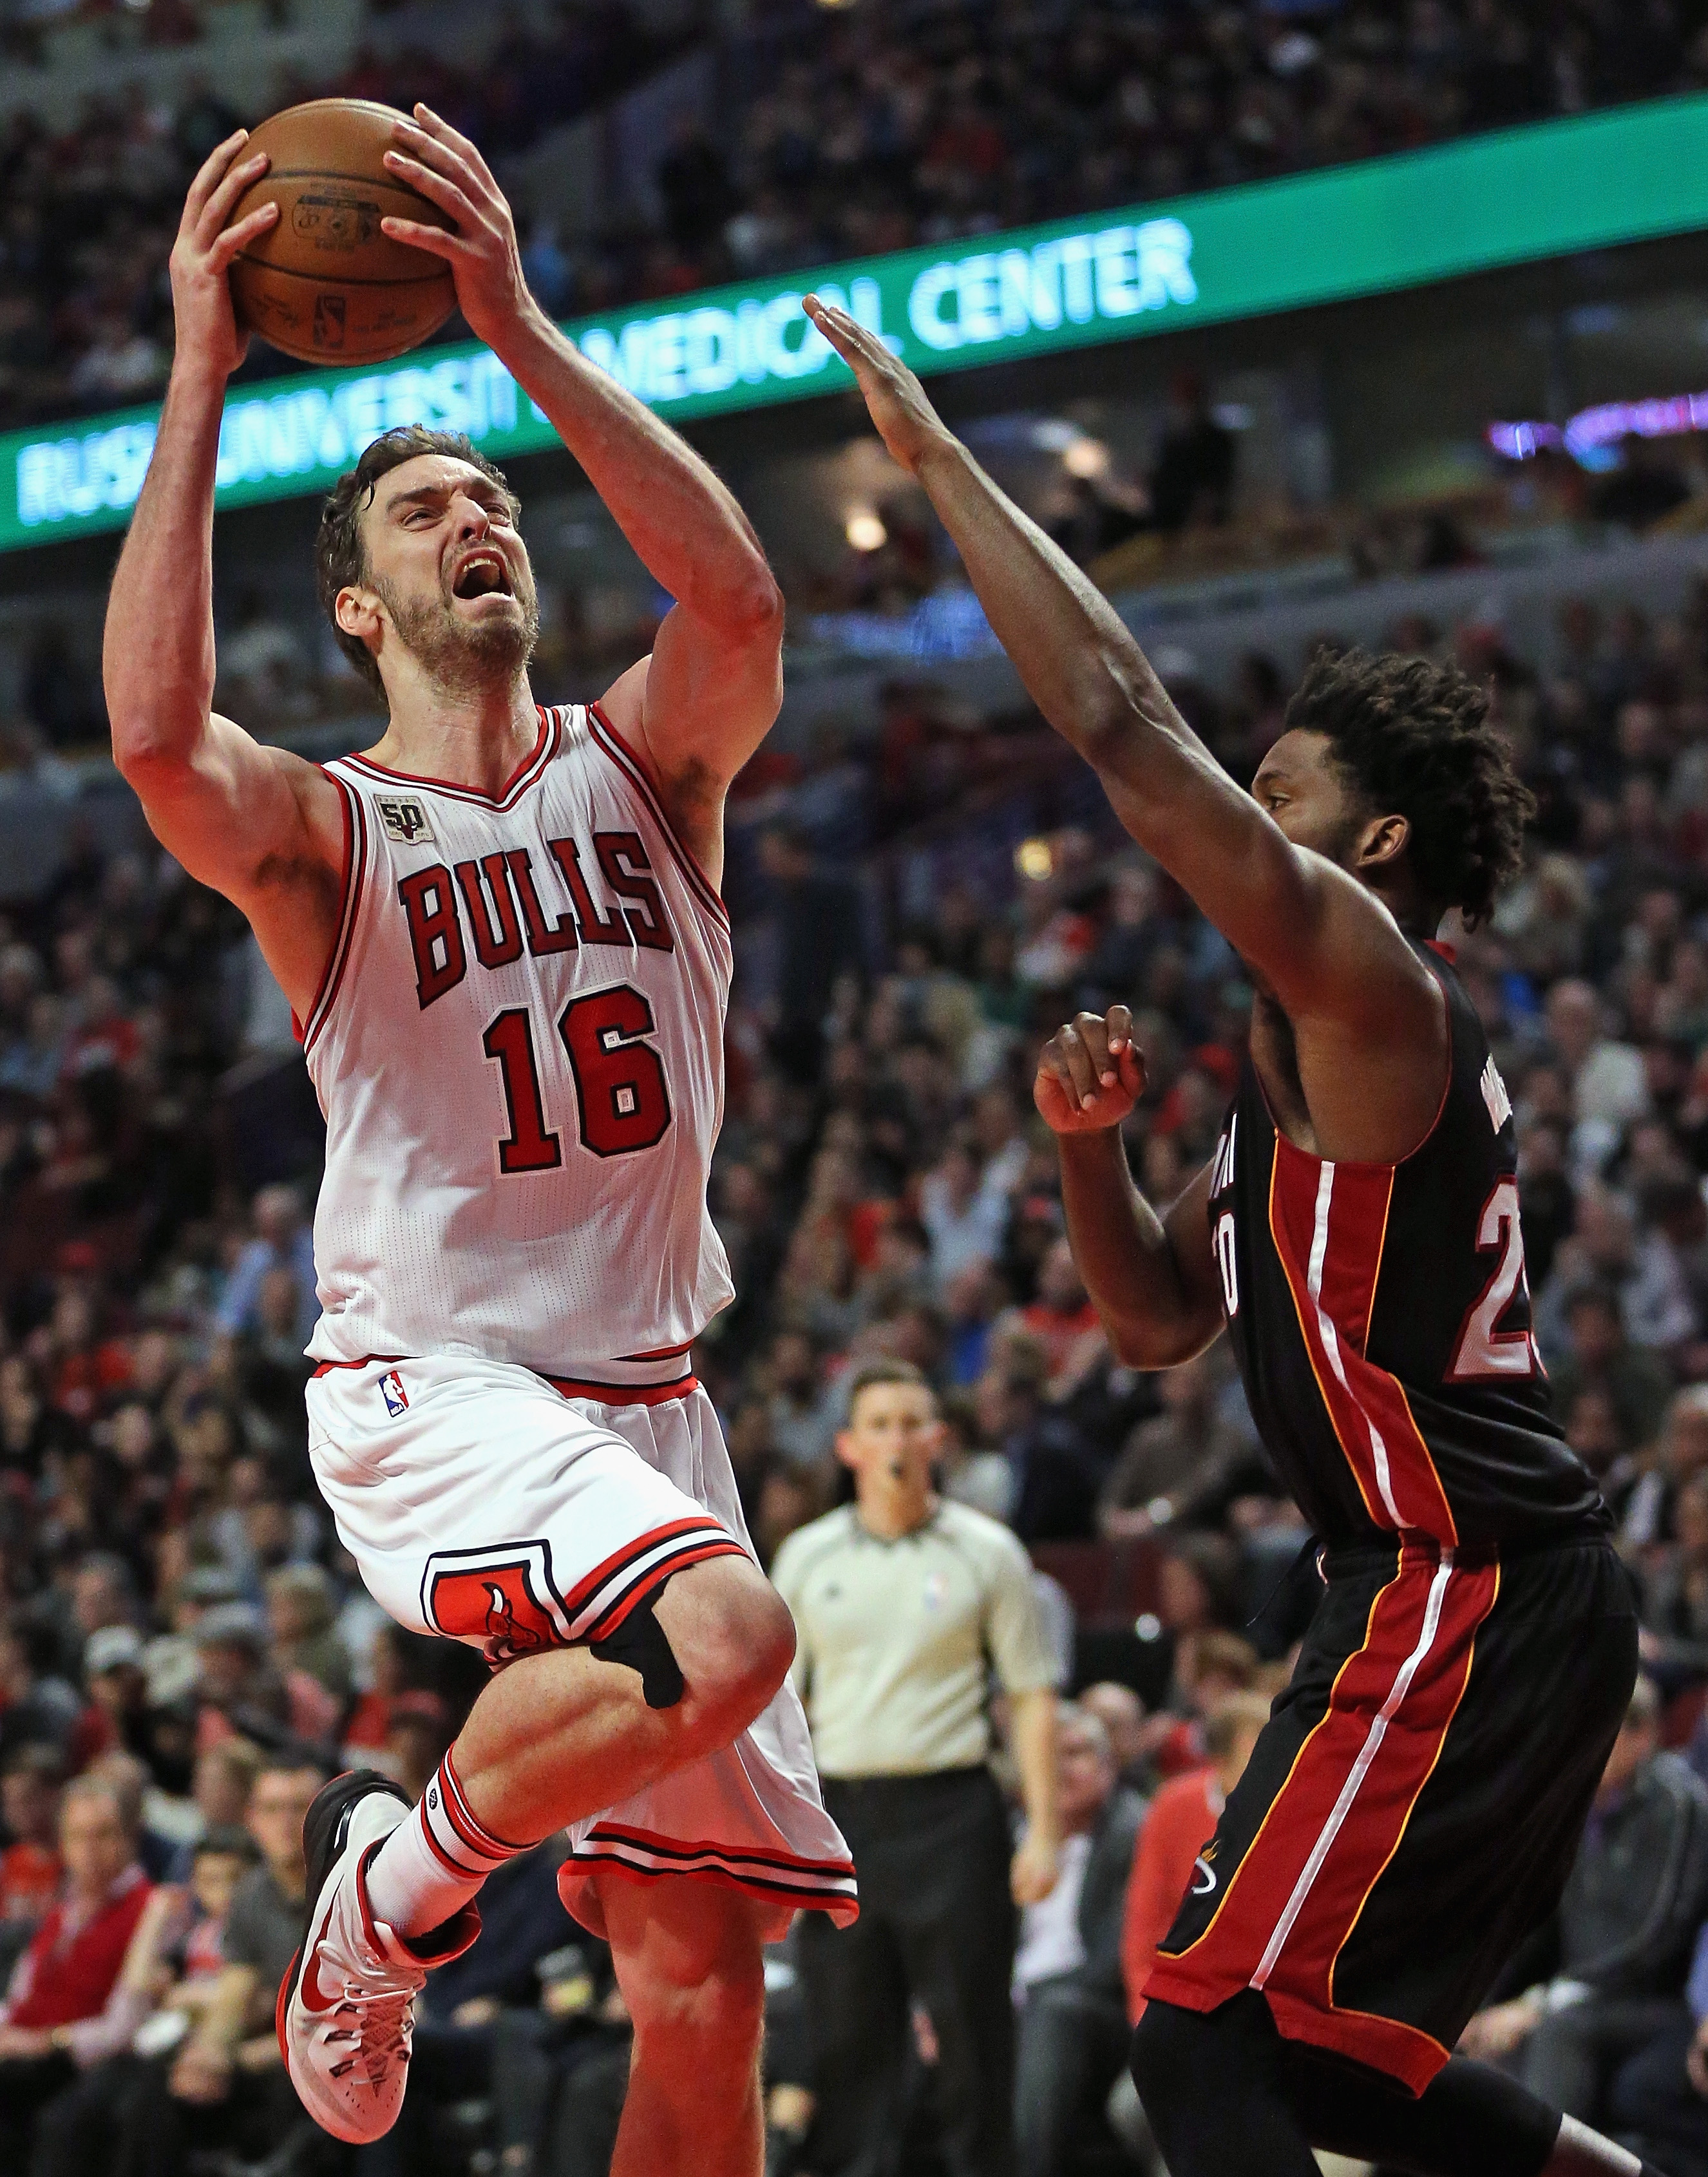 CHICAGO, IL - MARCH 11: Pau Gasol #16 of the Chicago Bulls goes up for a shot past Justise Winslow #20 of the Miami Heat at the United Center on March 11, 2016 in Chicago, Illinois. The Heat defeated the Bulls 118-96. (Photo by Jonathan Daniel/Getty Image